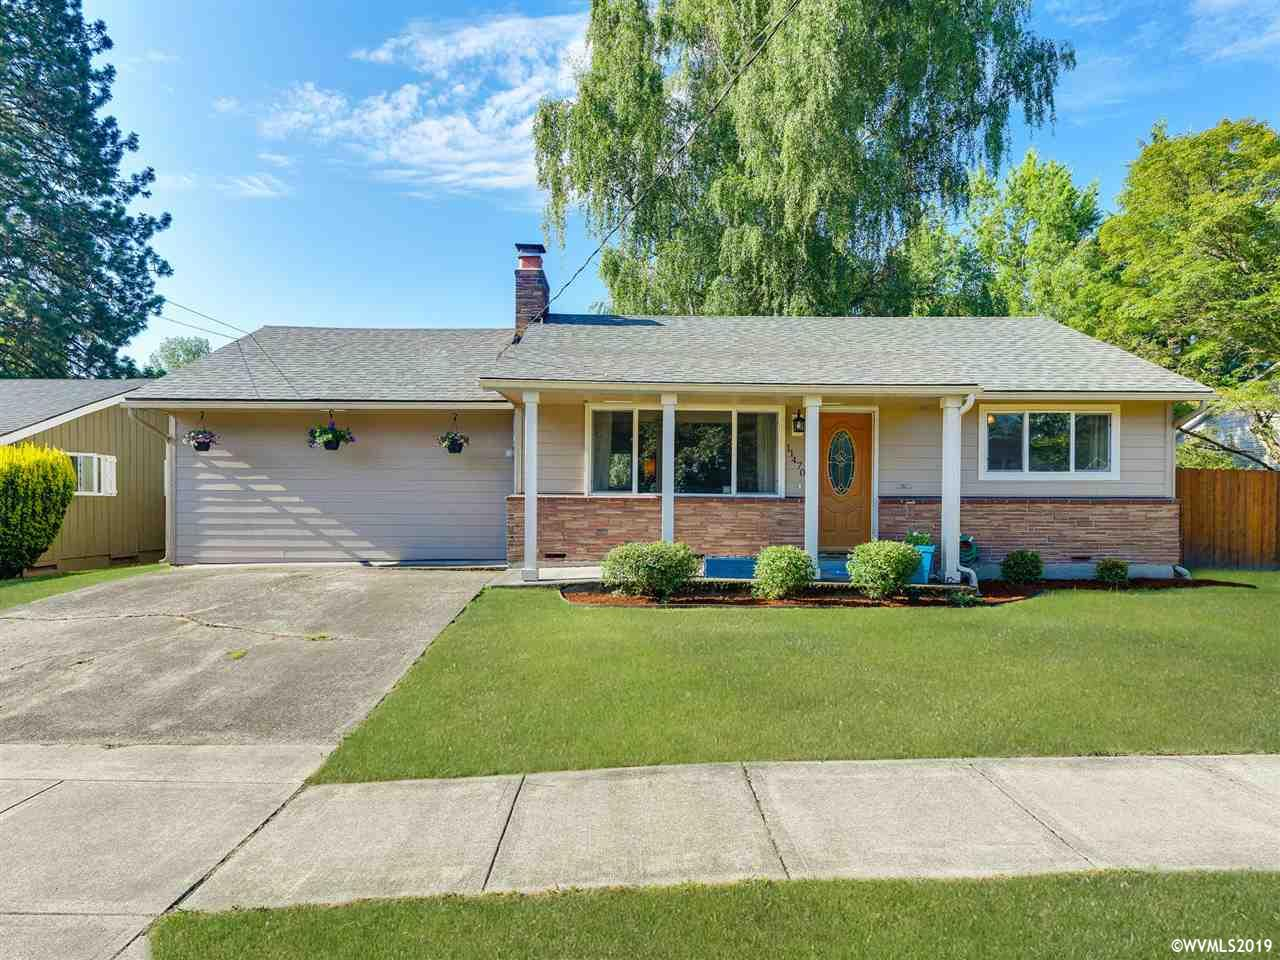 11470 SW 11th St 97005 - One of Beaverton Homes for Sale